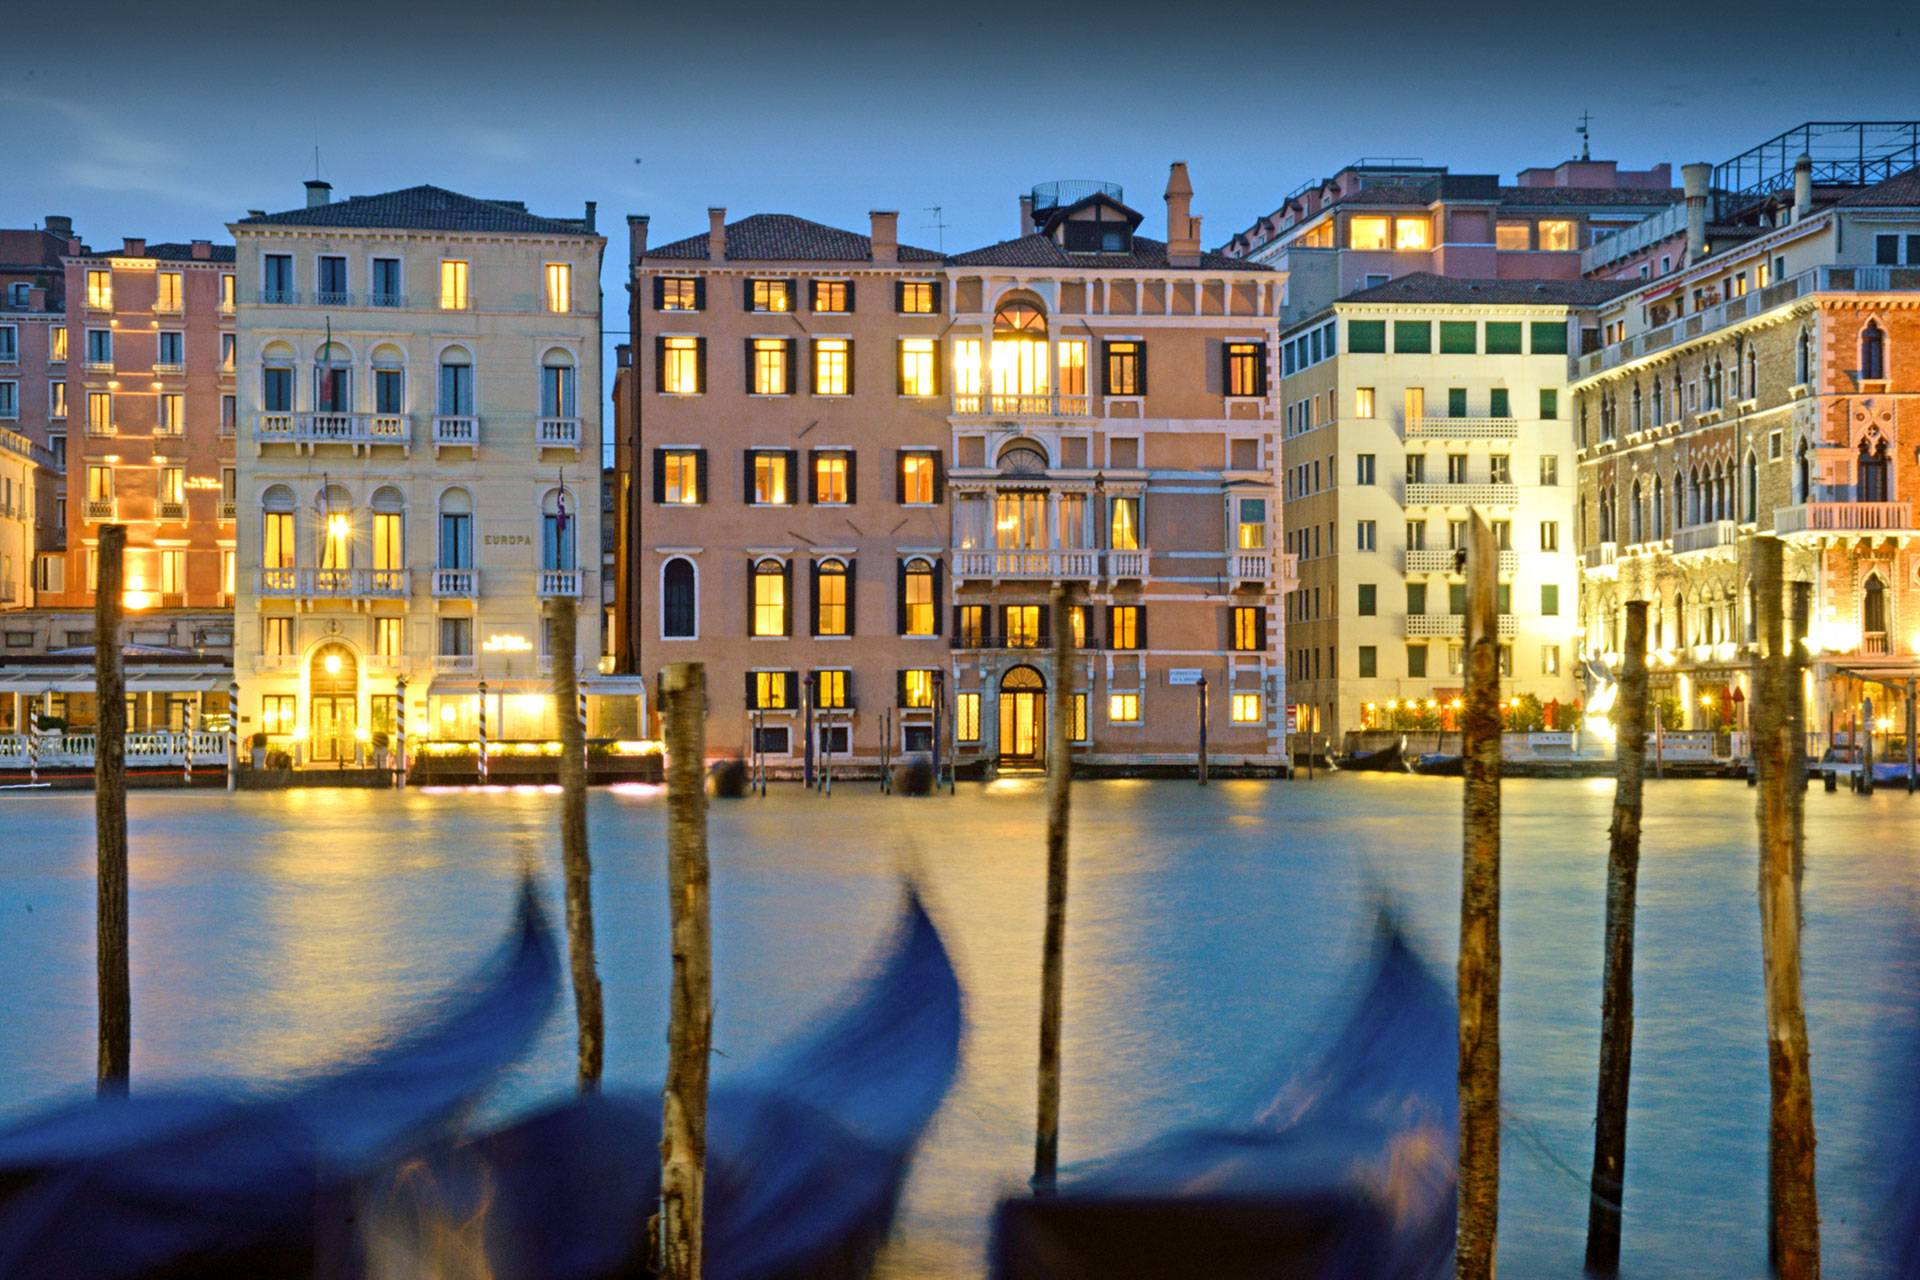 View of Palazzo Barozzi and the Grand Canal at night